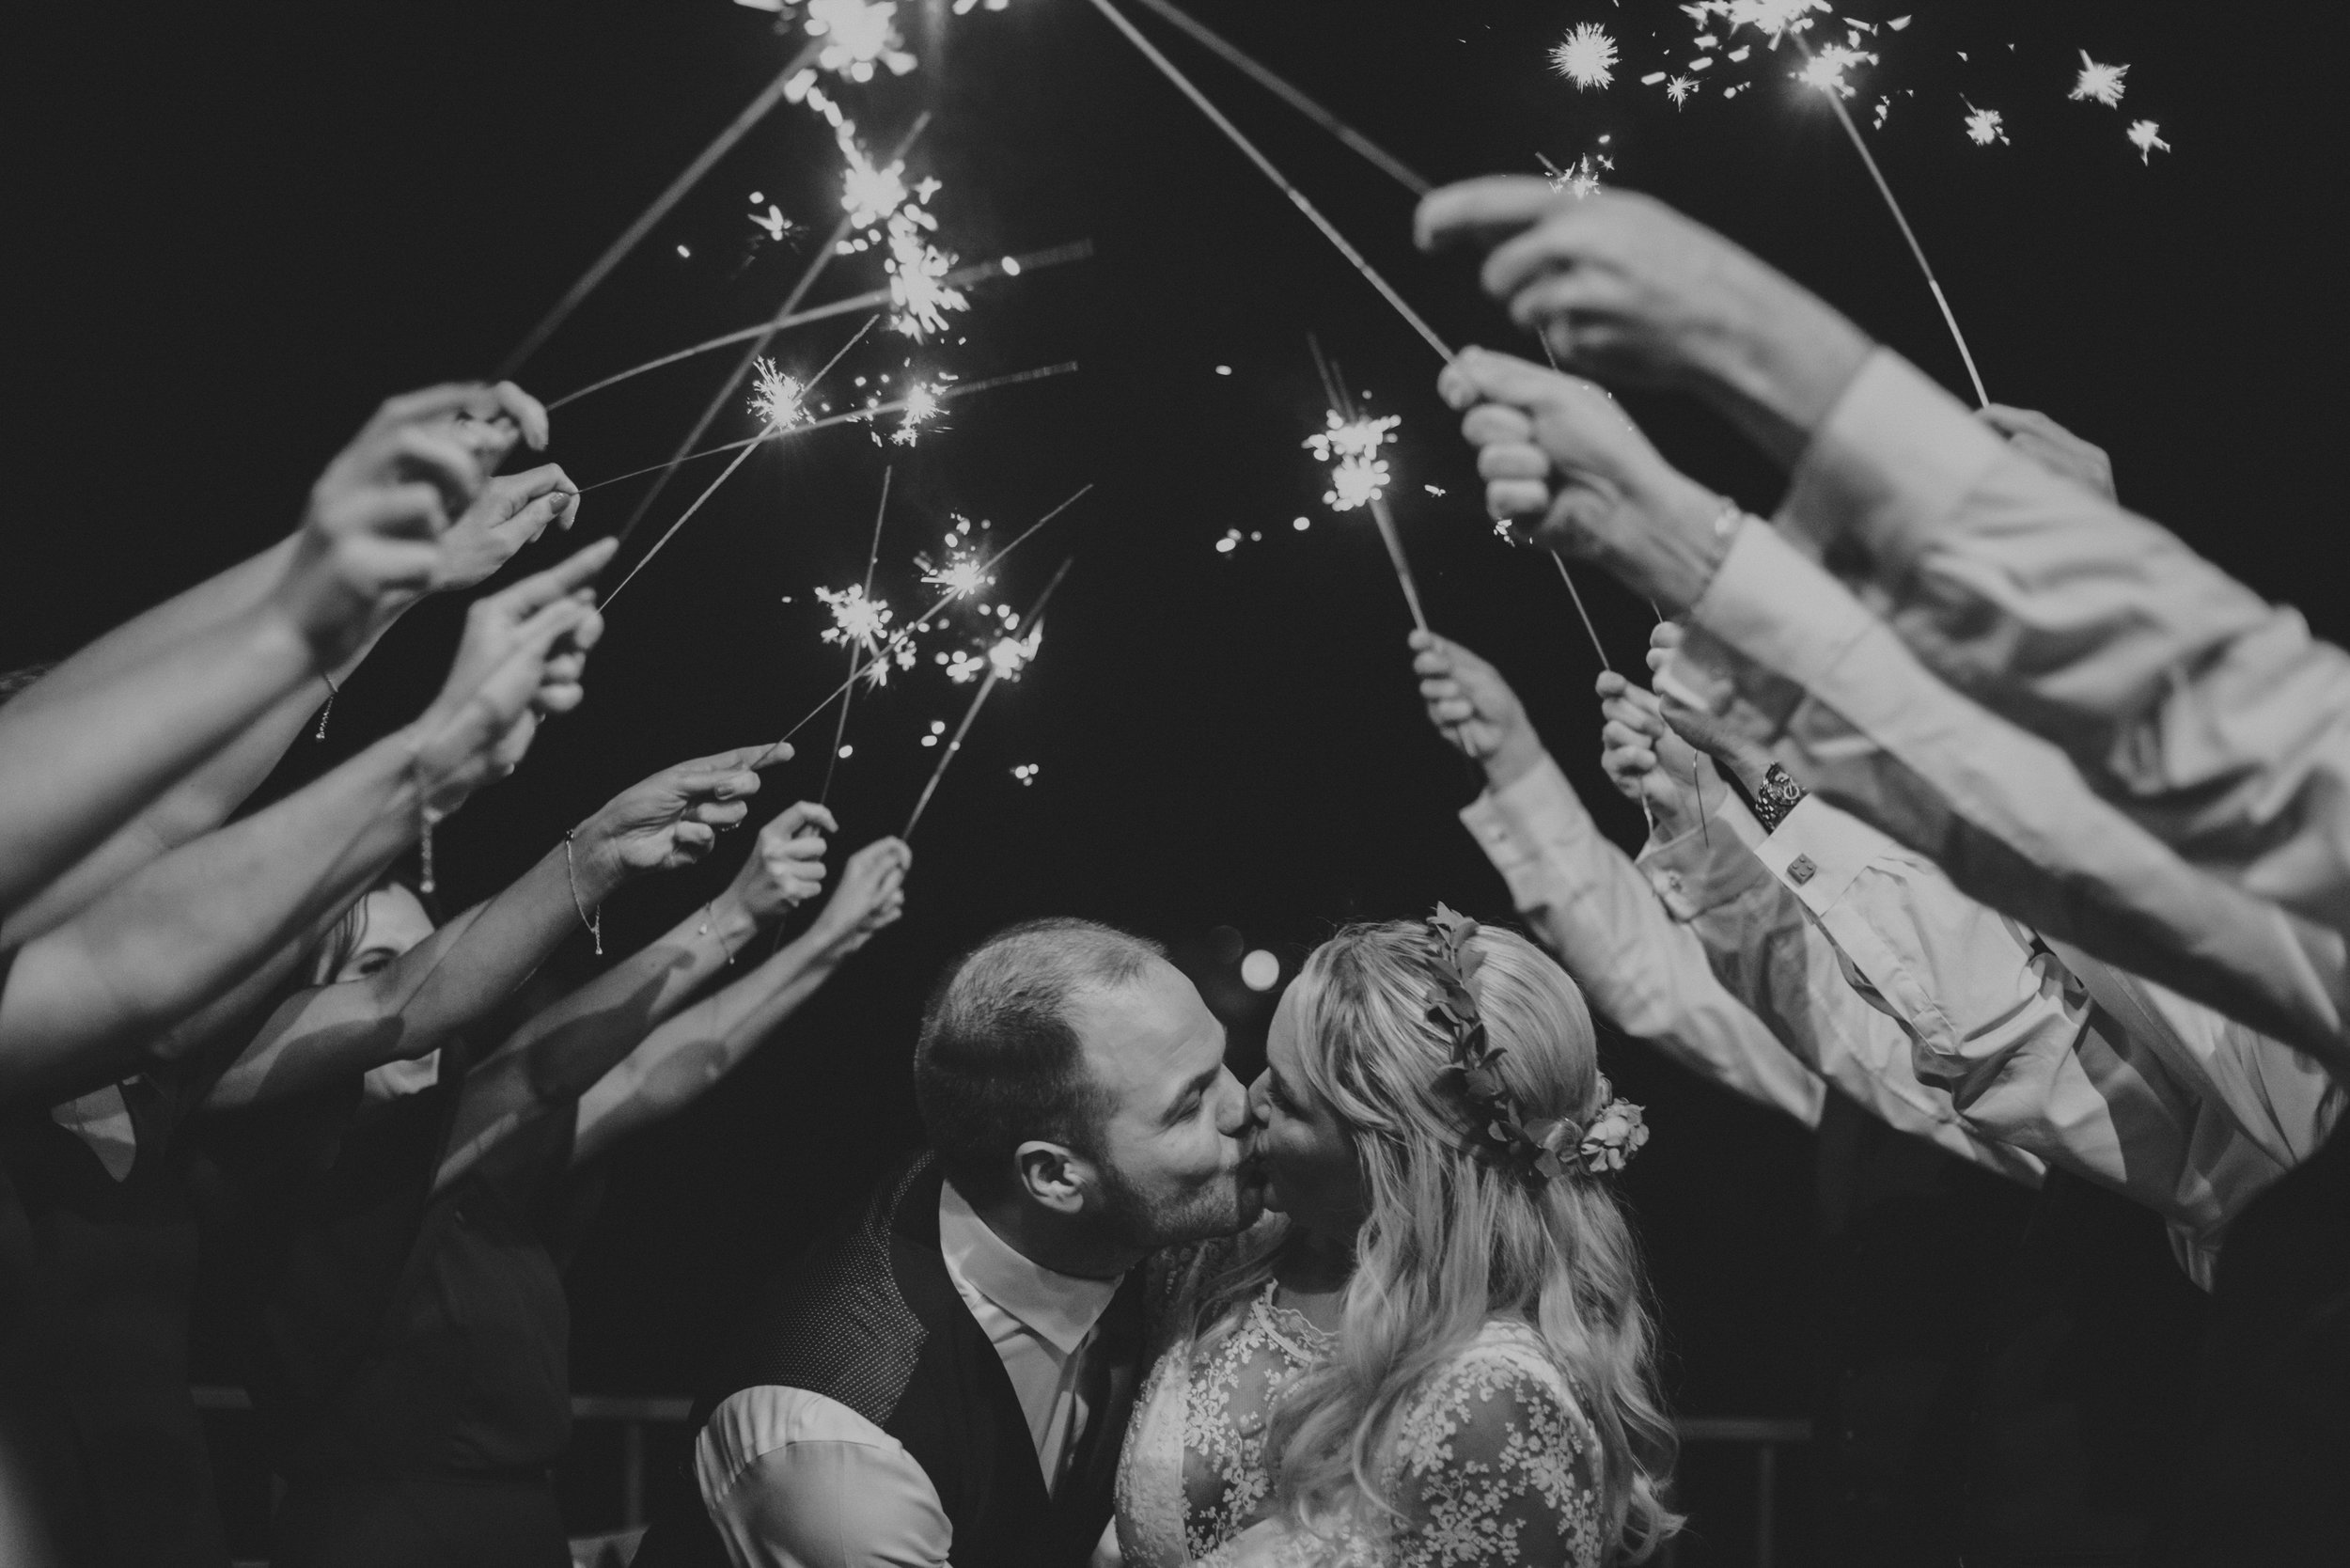 irish weddings 2019 - sparkler shot